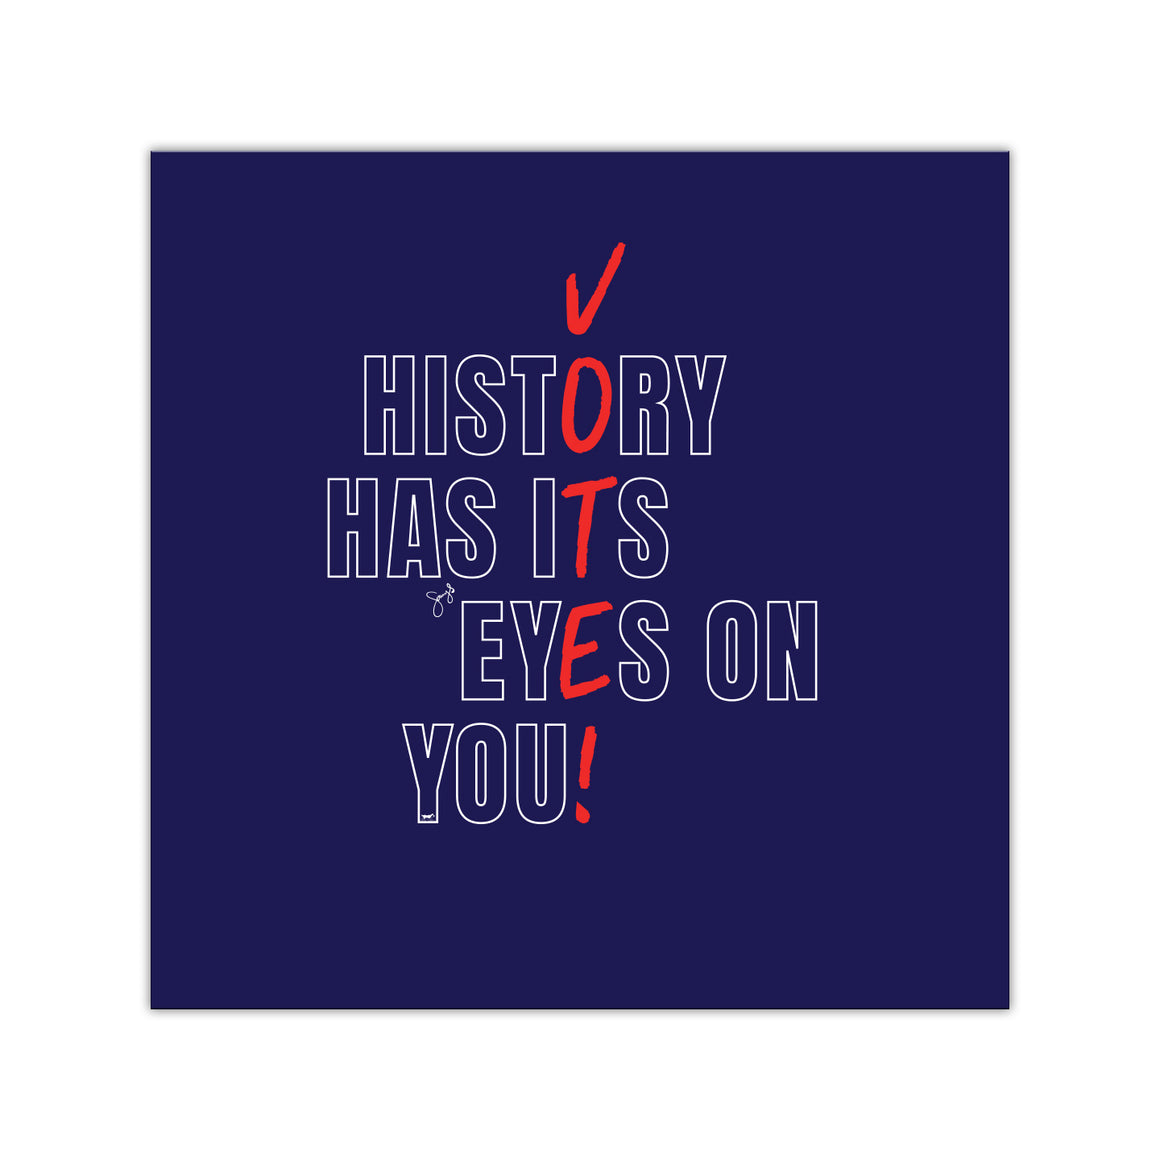 "History Has Its Eyes on You - VOTE! - 4""x4"" Magnet - Blue"